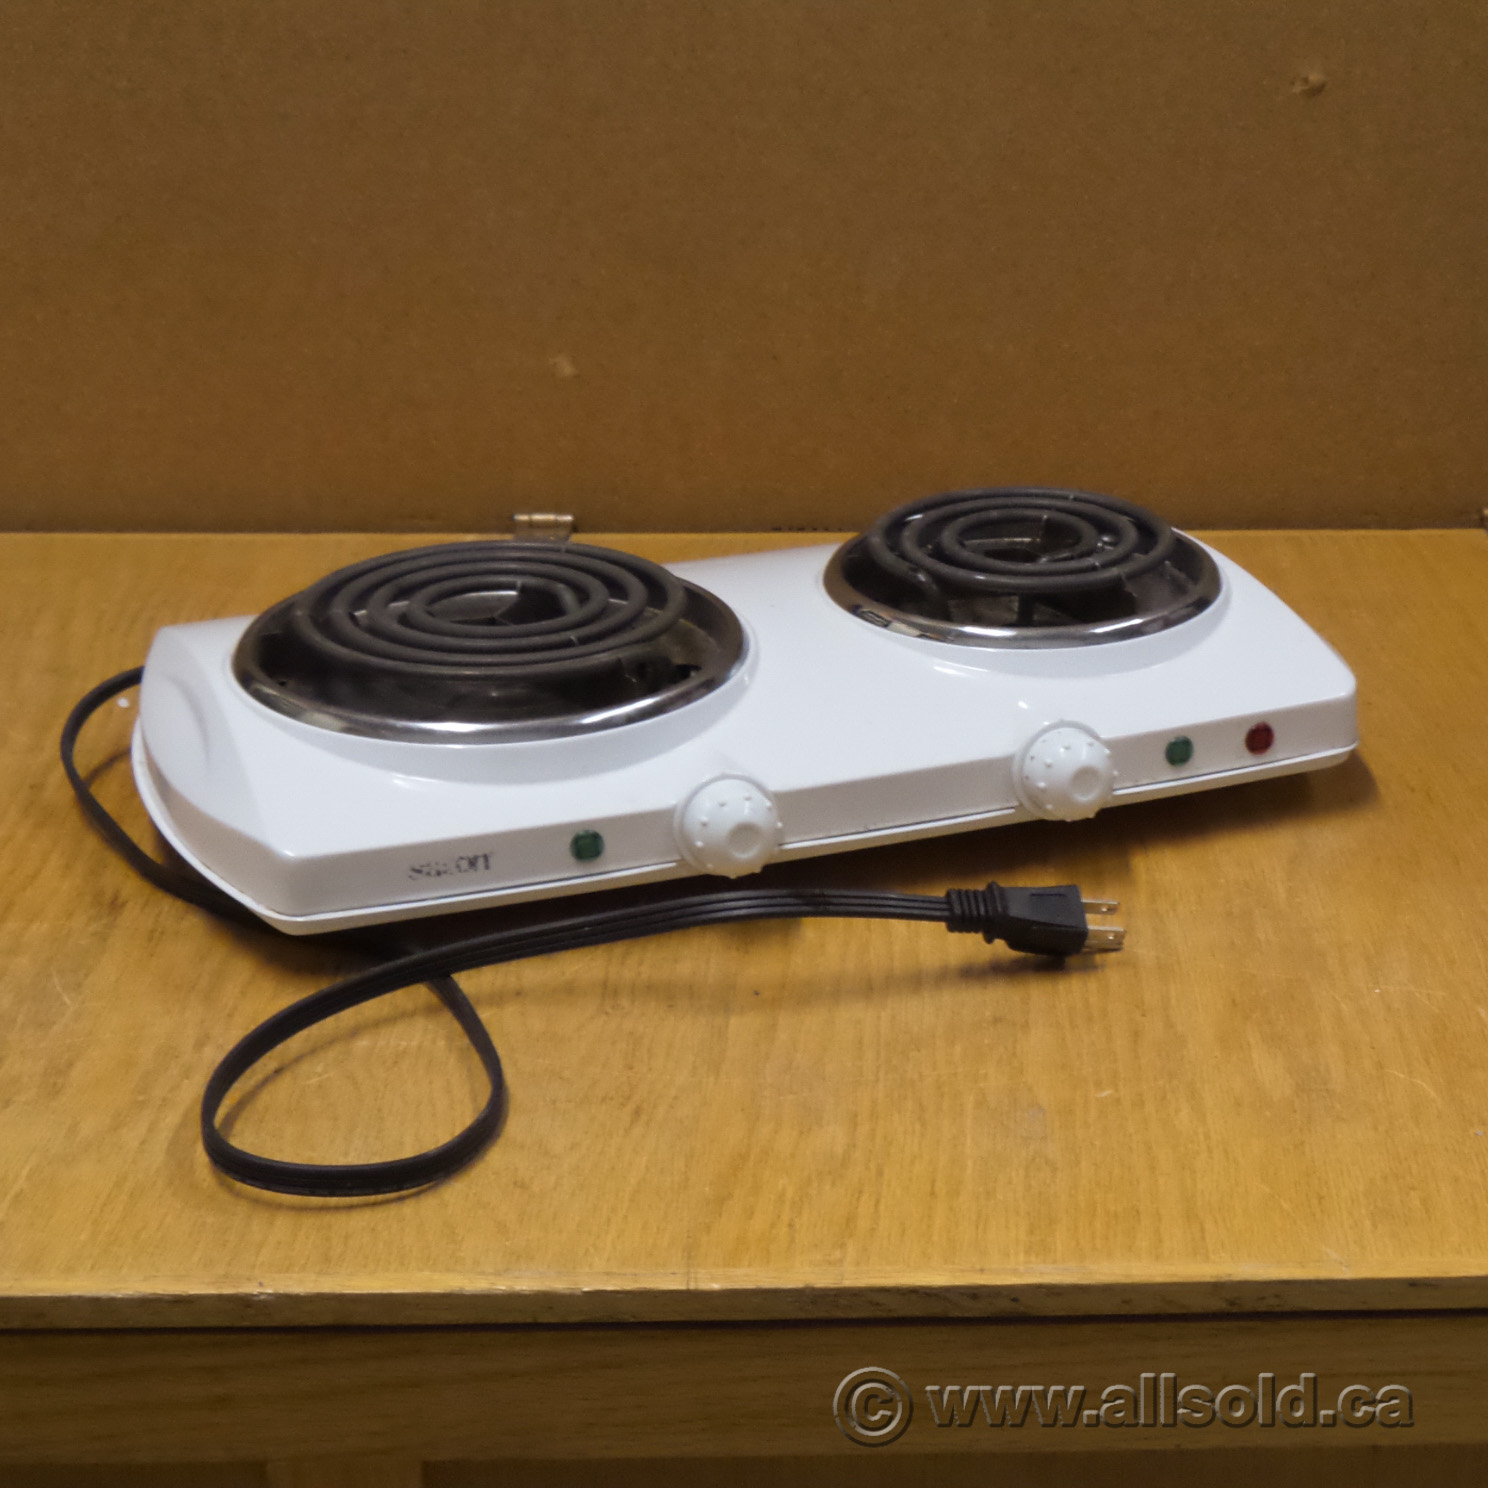 Salton White Double Burner Electric Hot Plate Allsold Ca Buy Sell Used Office Furniture Calgary